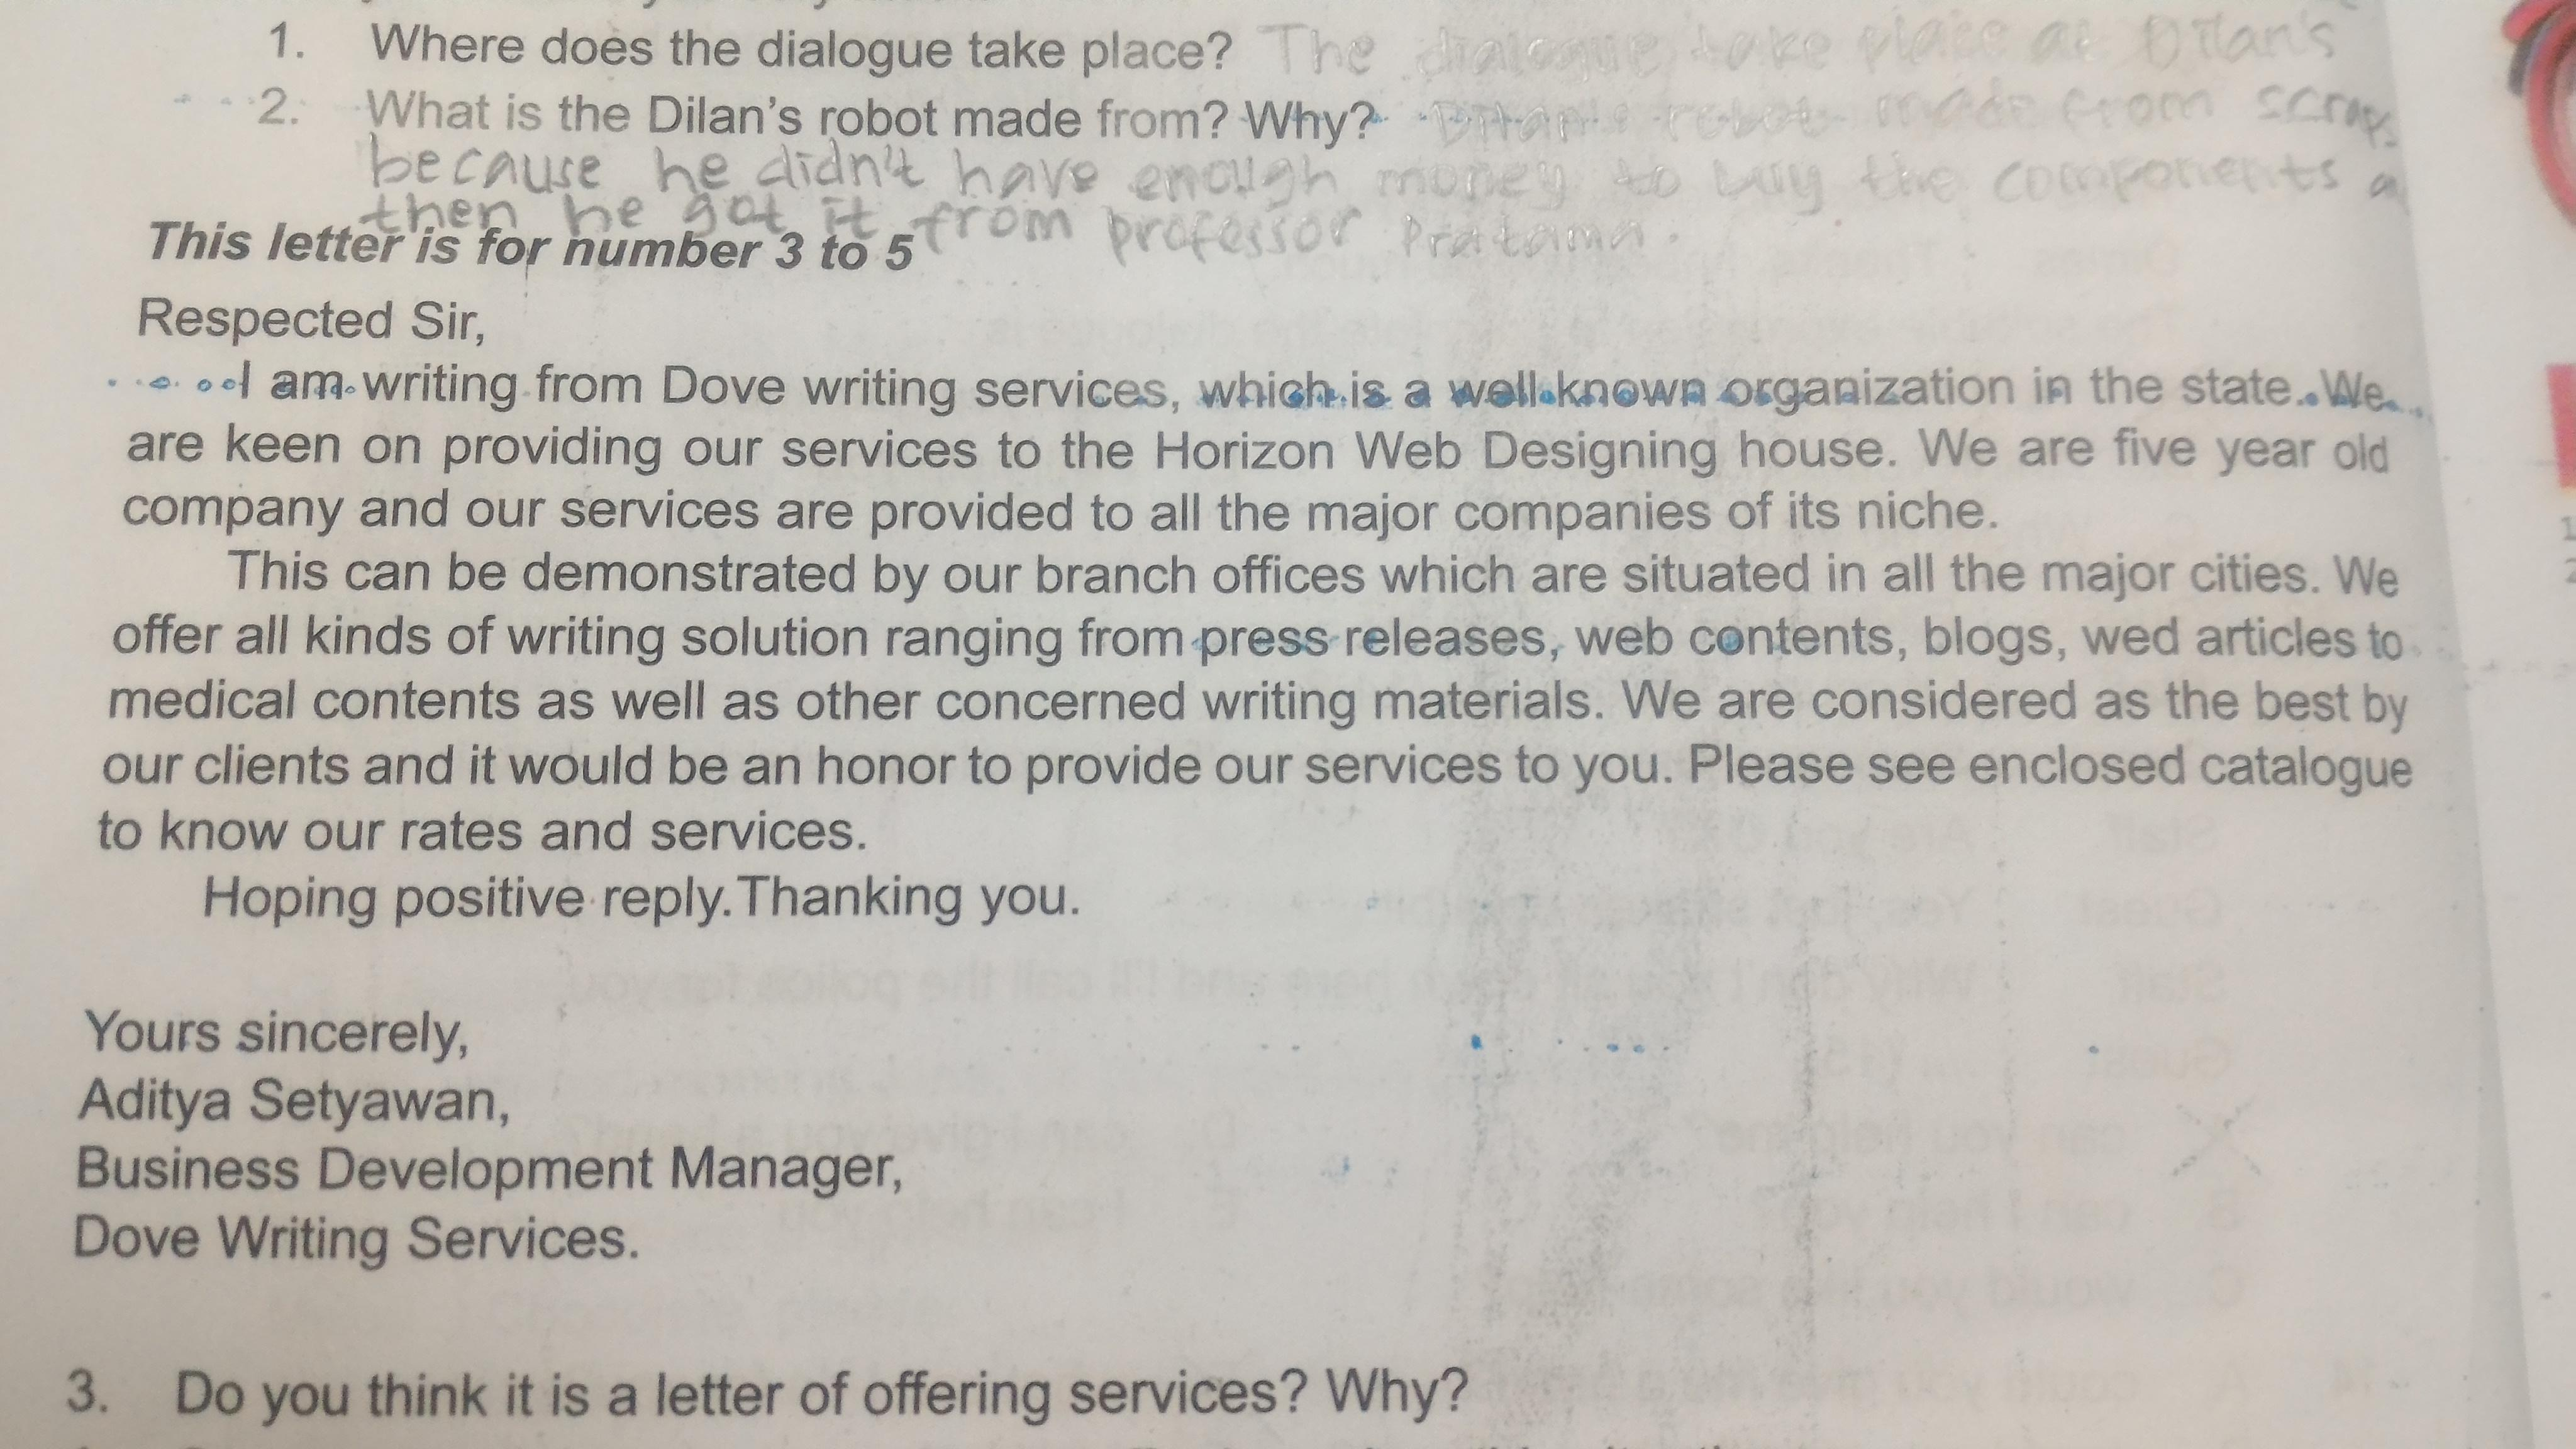 Do You Think It Is Letter Of Offering Services Why Jelaskan Yhaaa Brainly Co Id